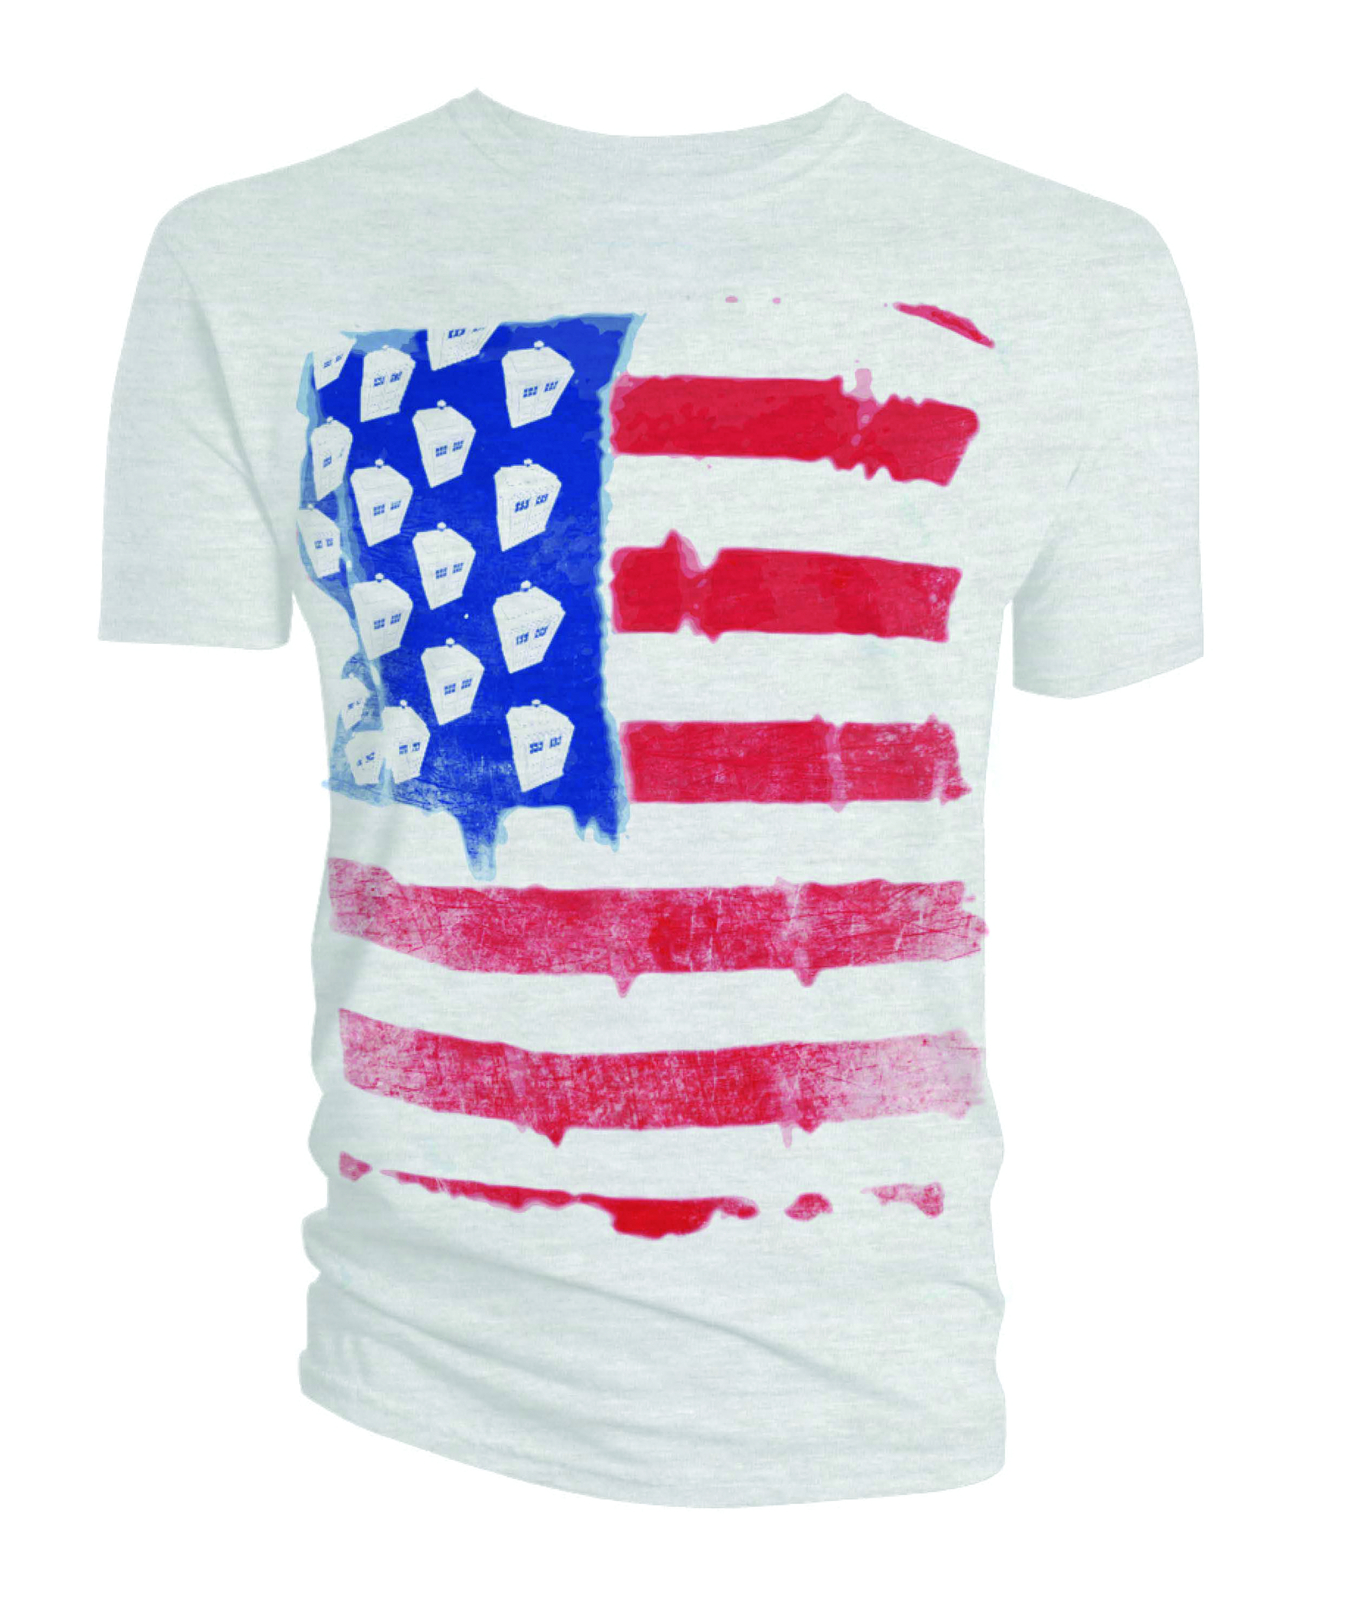 DOCTOR WHO STARS AND STRIPES T/S LG